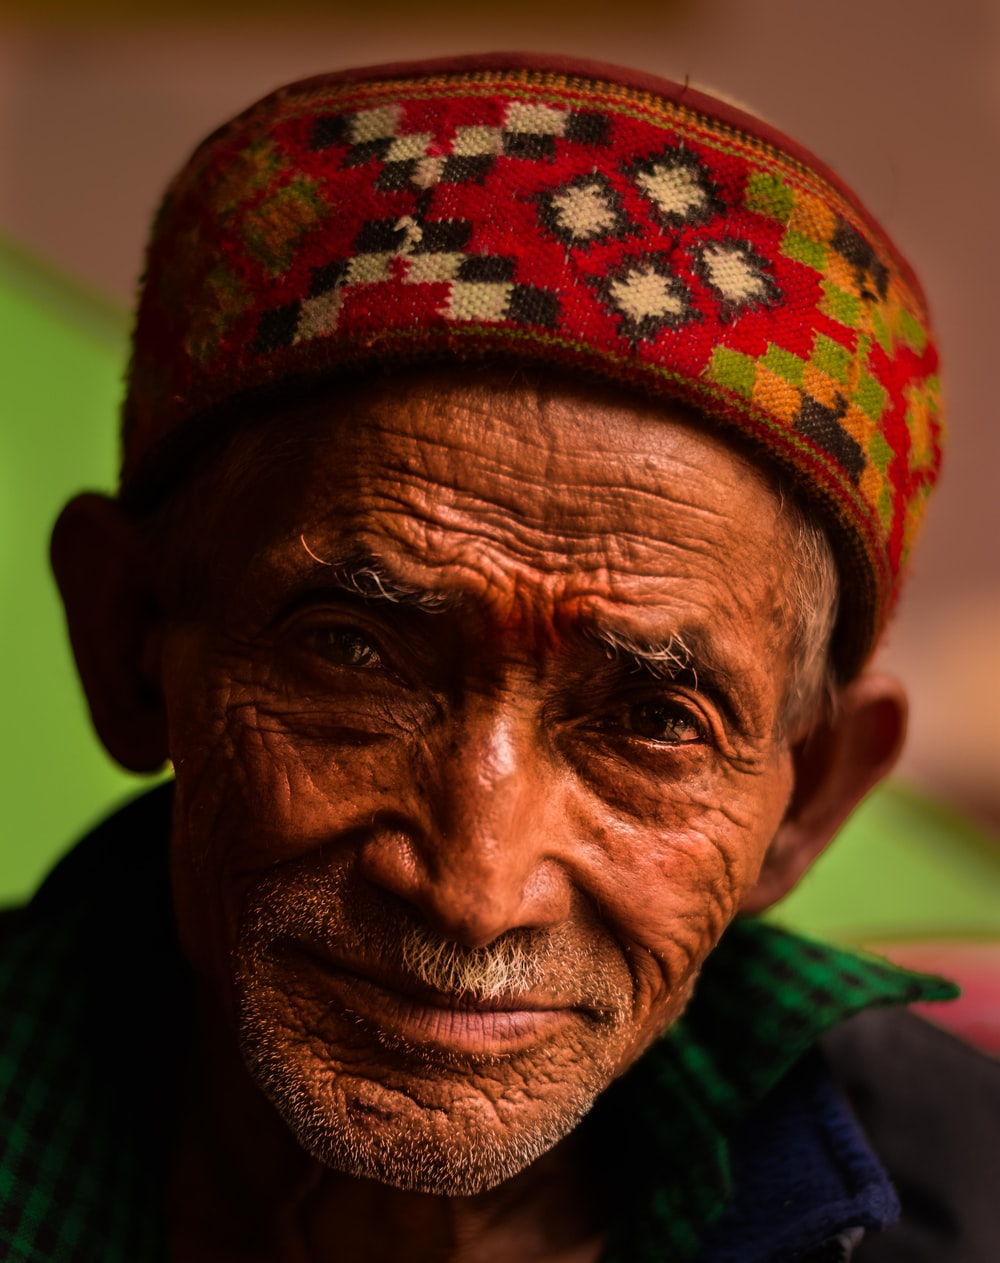 close-up photo of man wears red and multicolored traditional headdress